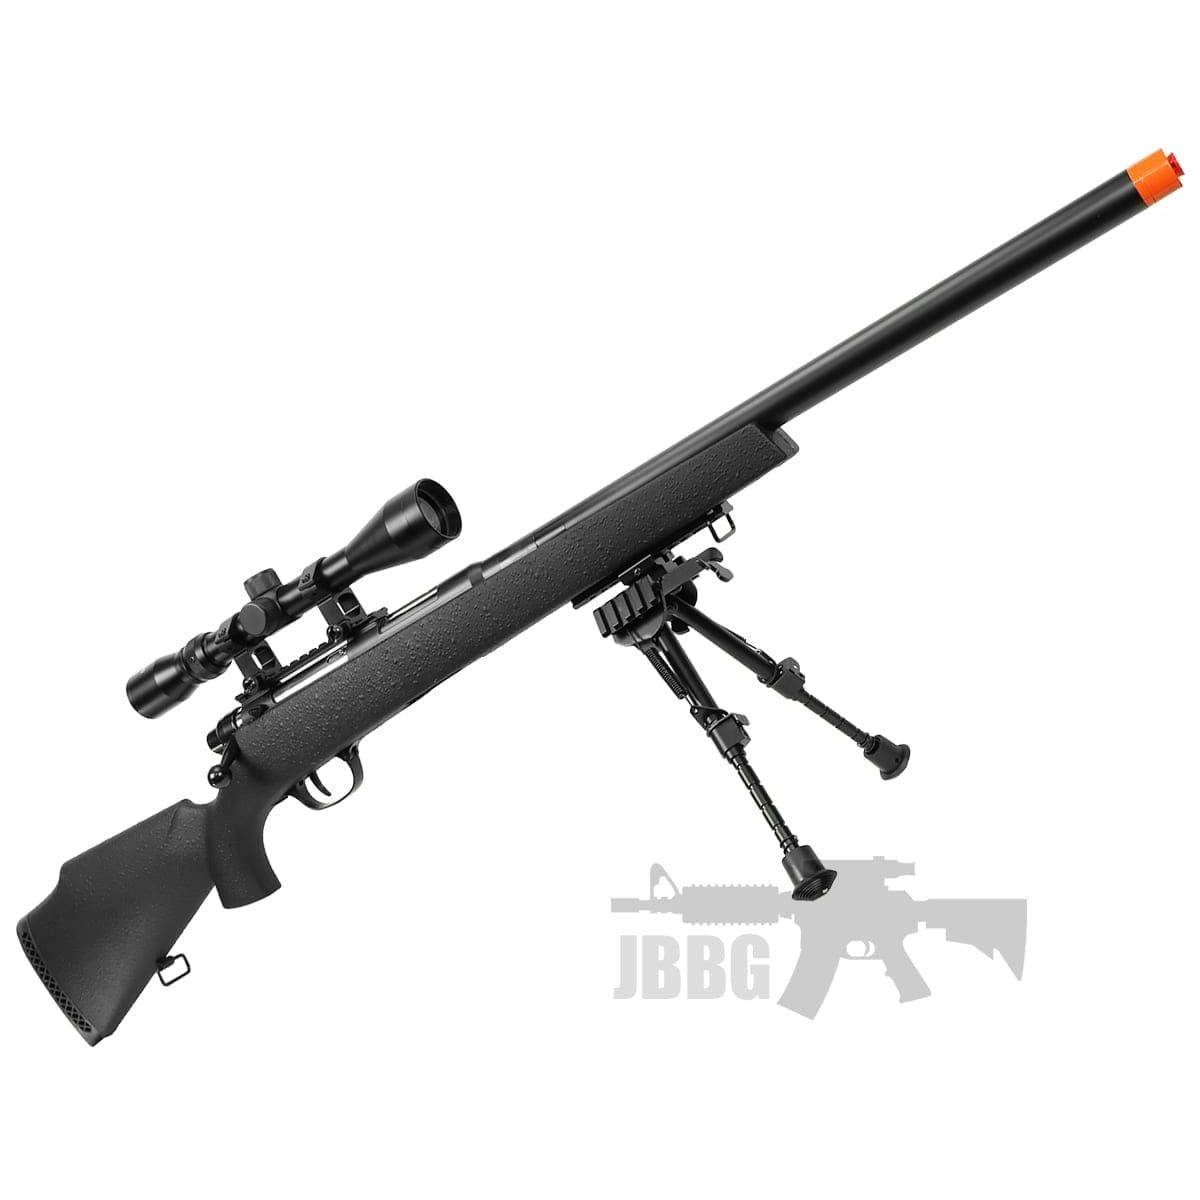 x9 airsoft rifle